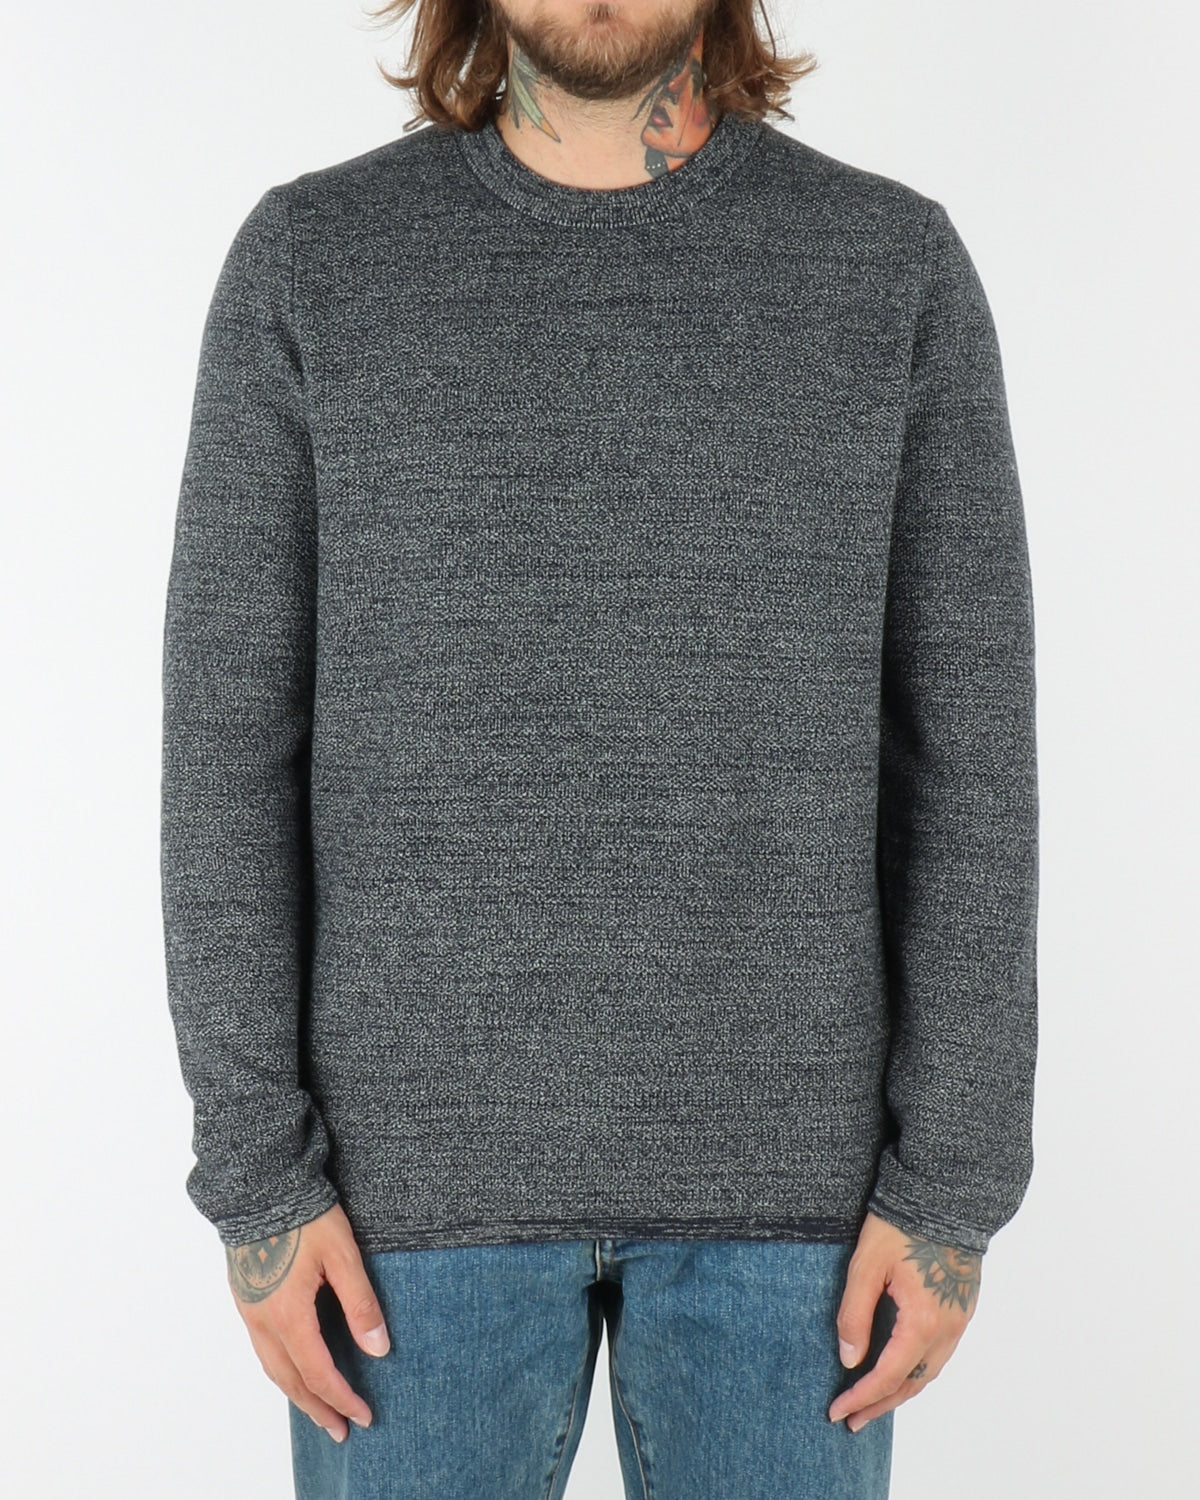 wac_wearecph_hysal_o-neck knit_navy melange_view_1_3